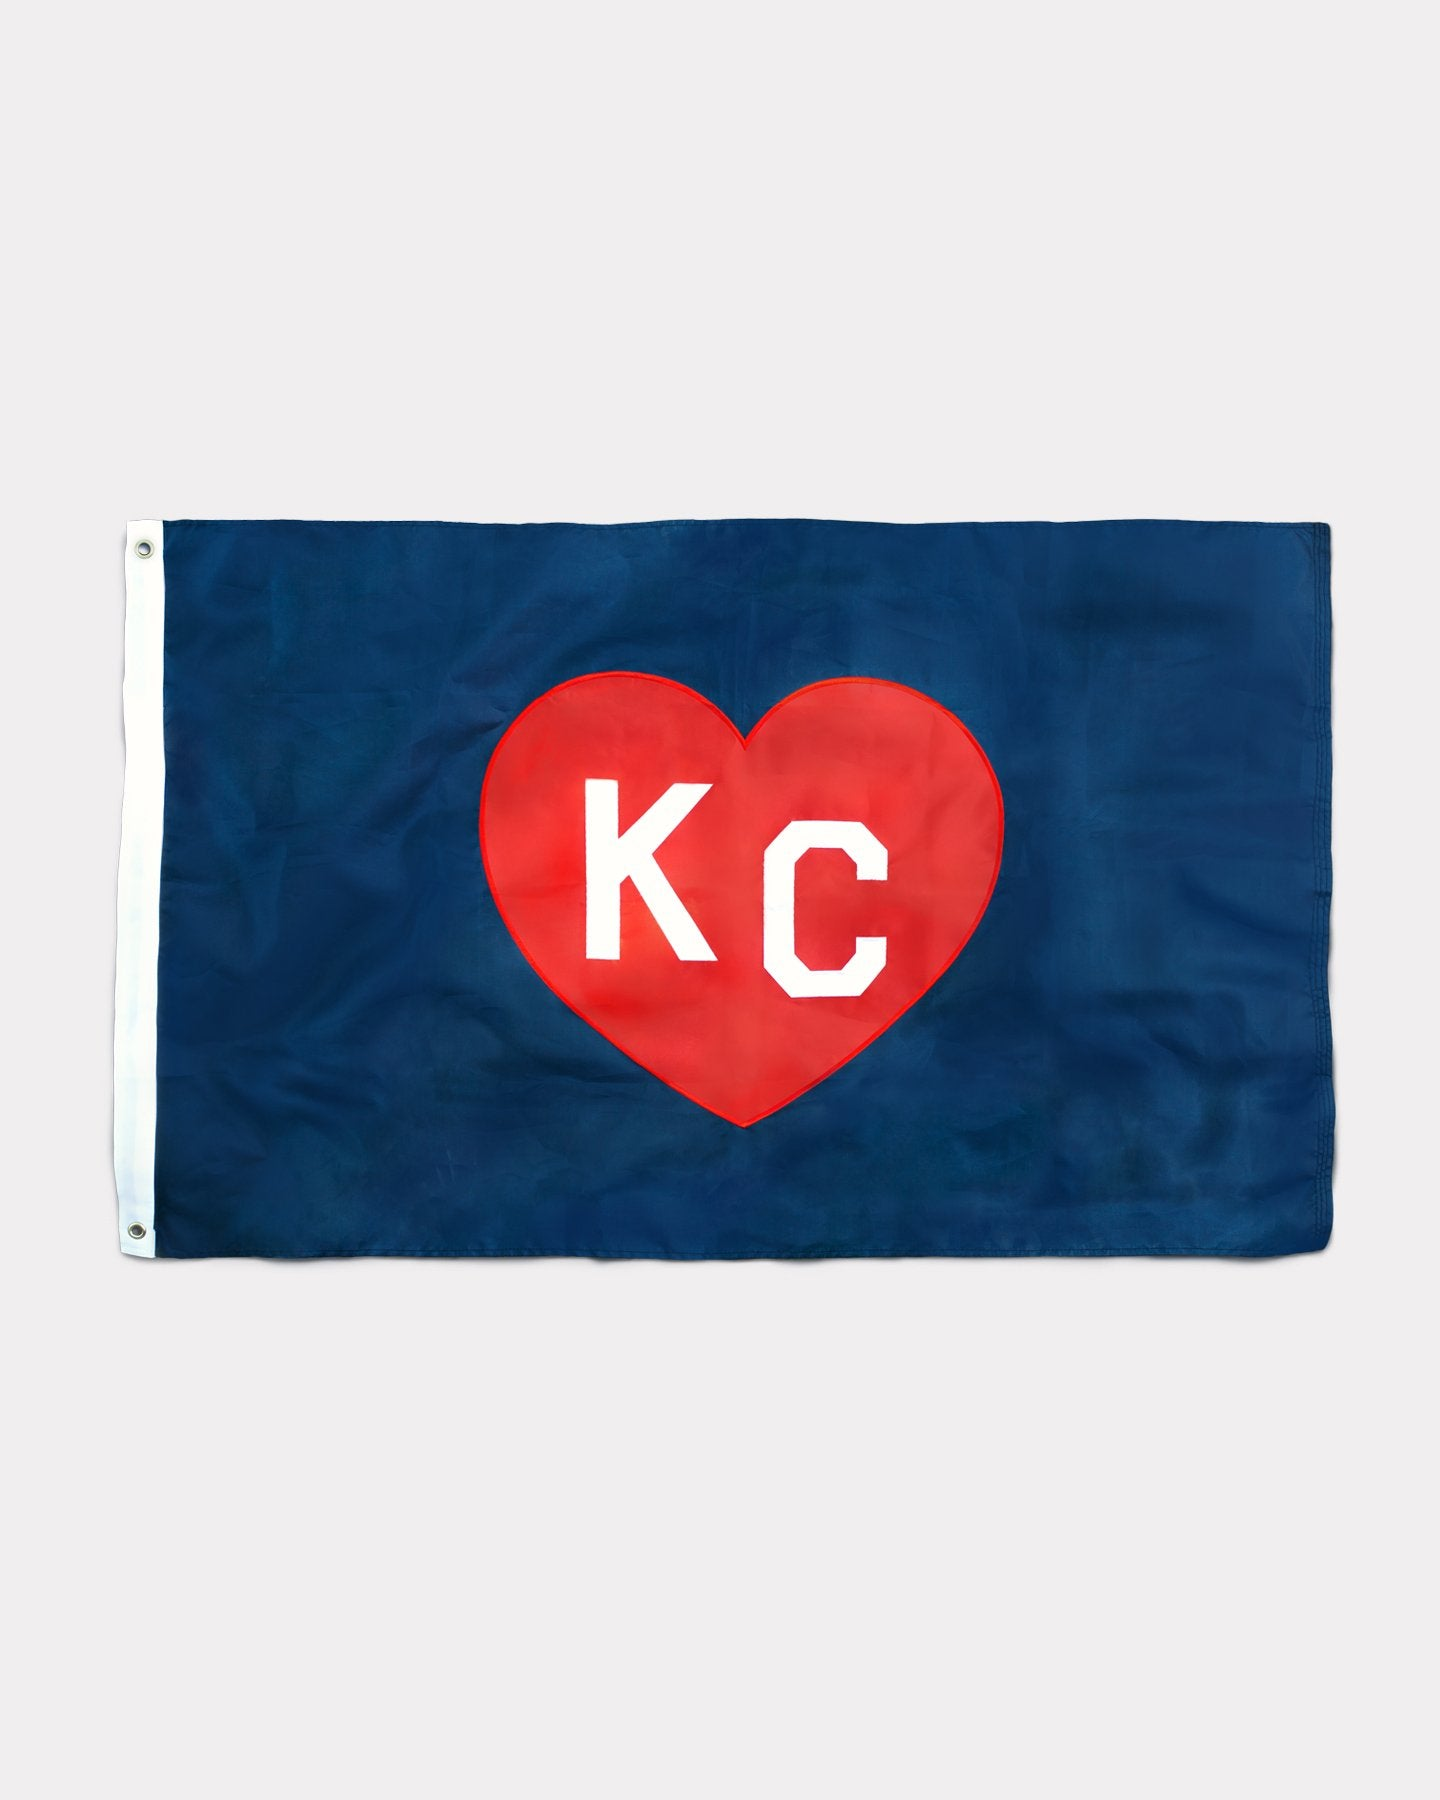 Navy & Red Embroidered Nylon Two-Sided KC Heart Flag